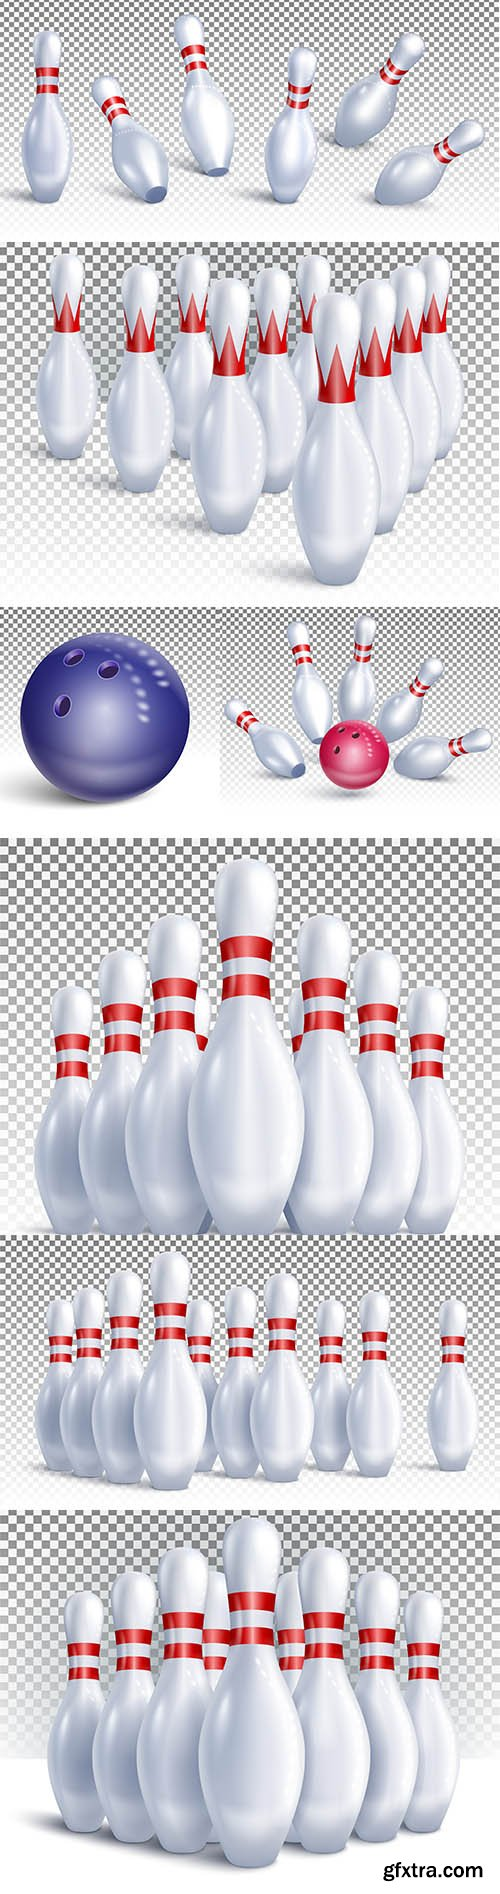 Bowling pins arranged for game and tournament front view